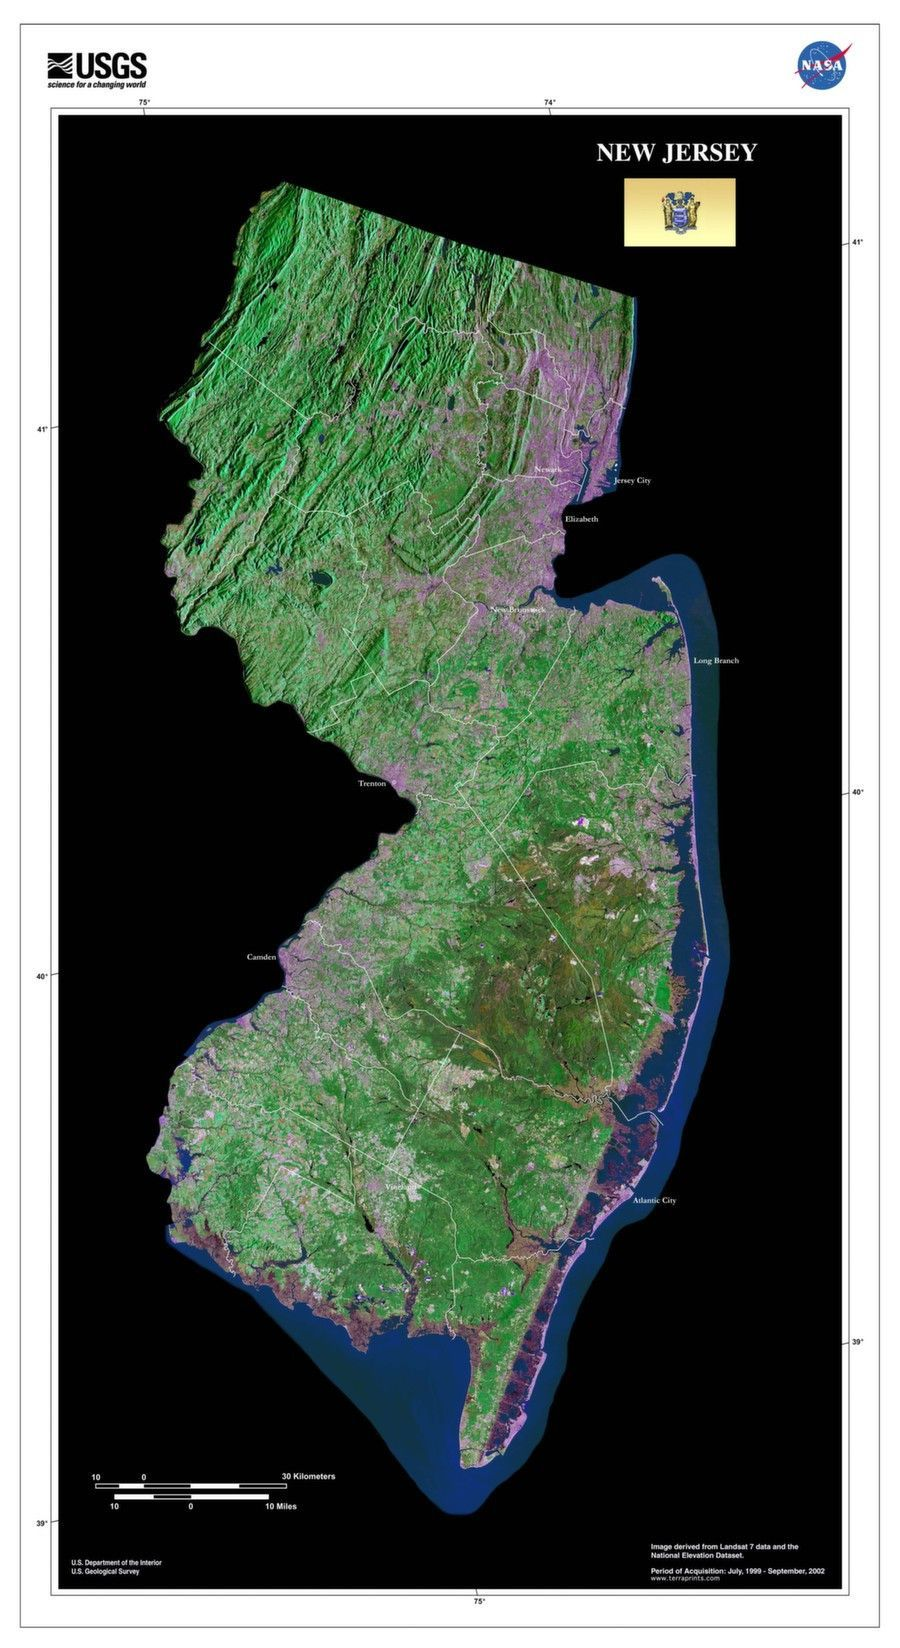 New Jersey Satellite Imagery State Map Poster City and Vacation